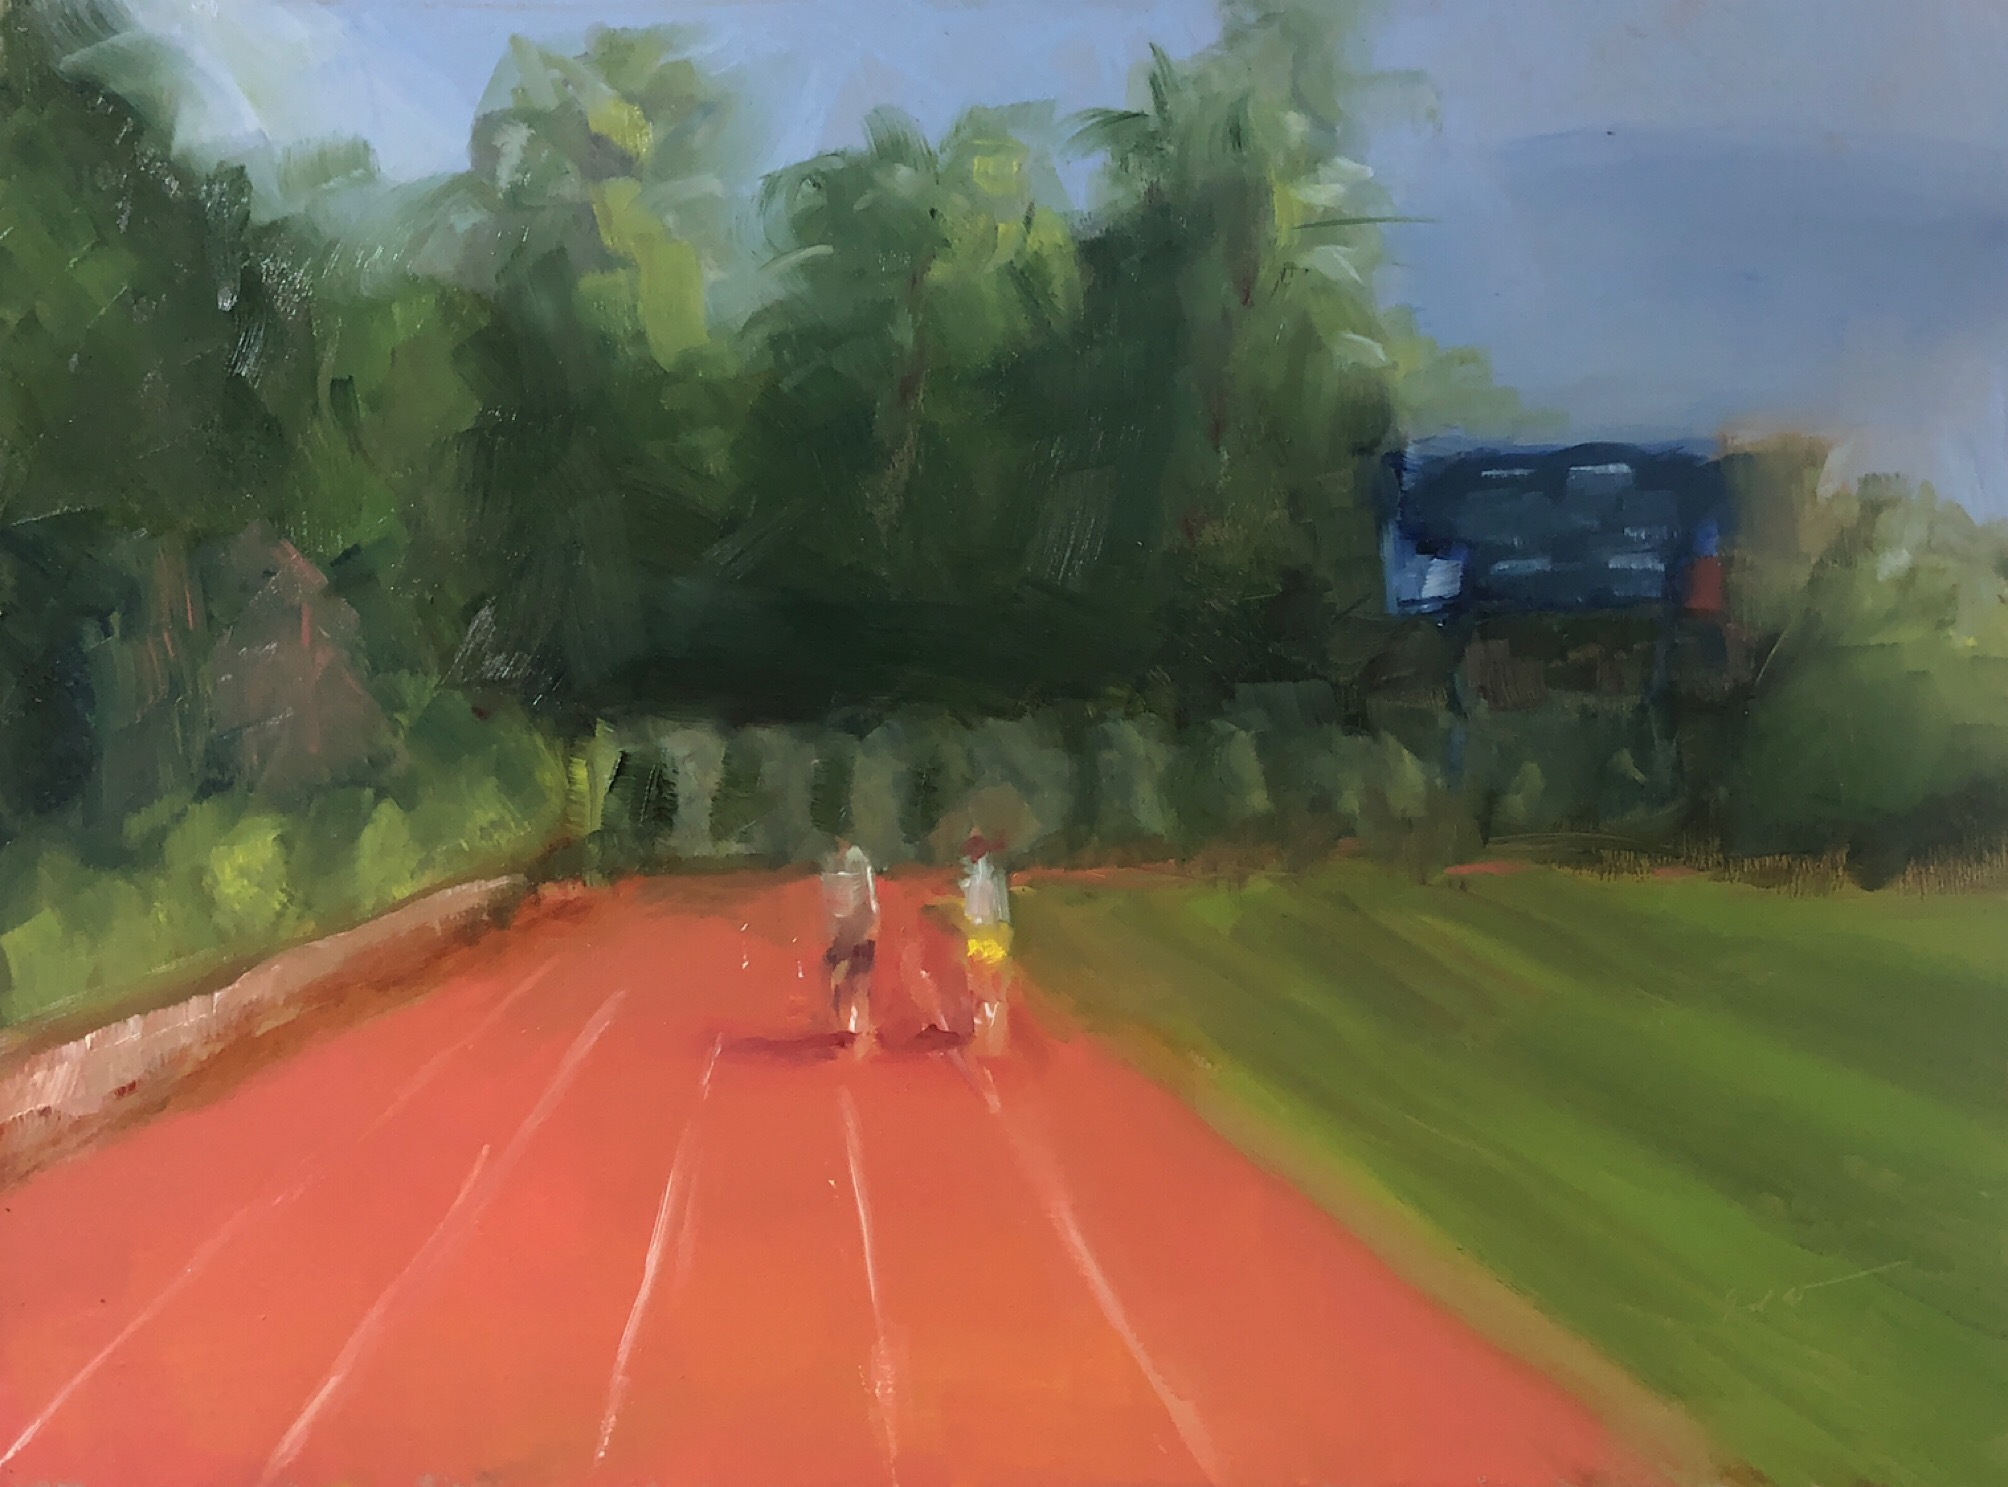 """Running at American University,"" June daily painting #18, oil on panel, 9"" x 12,"" 2019."